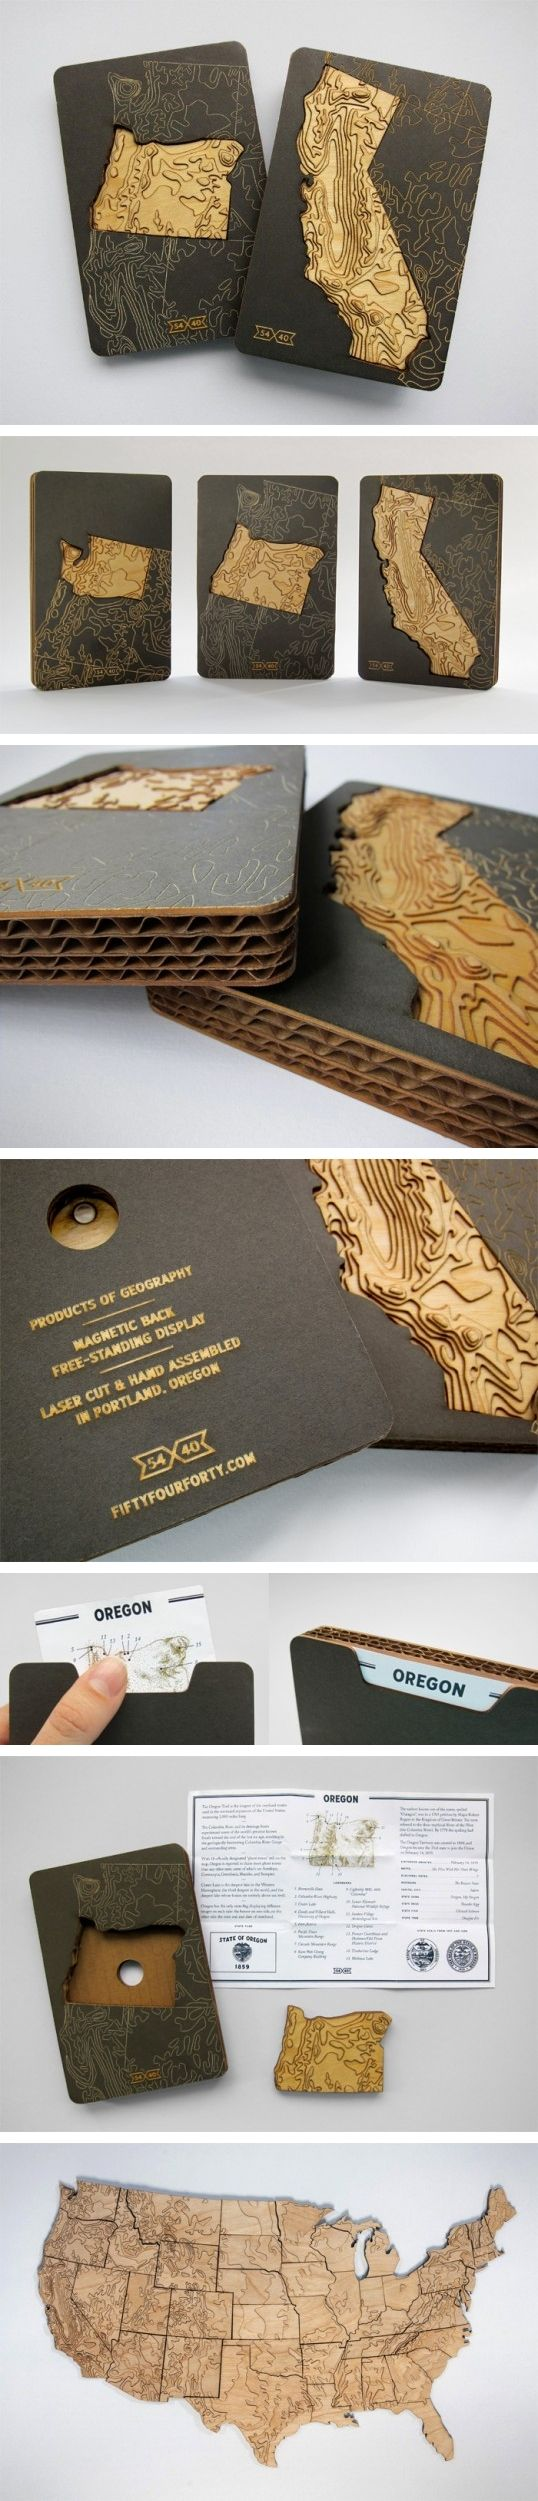 "Designed by the Bureau of Betterment | Country: Denmark ""The 54-40 packaging project was a collaboration between two sole proprietors: Mette Hornung Rankin of the Bureau of Betterment and Greg Jones of Fifty-Four Forty. Greg had the idea to create a set of magnetic-backed US states made out of laser cut wood that show the topography of America."